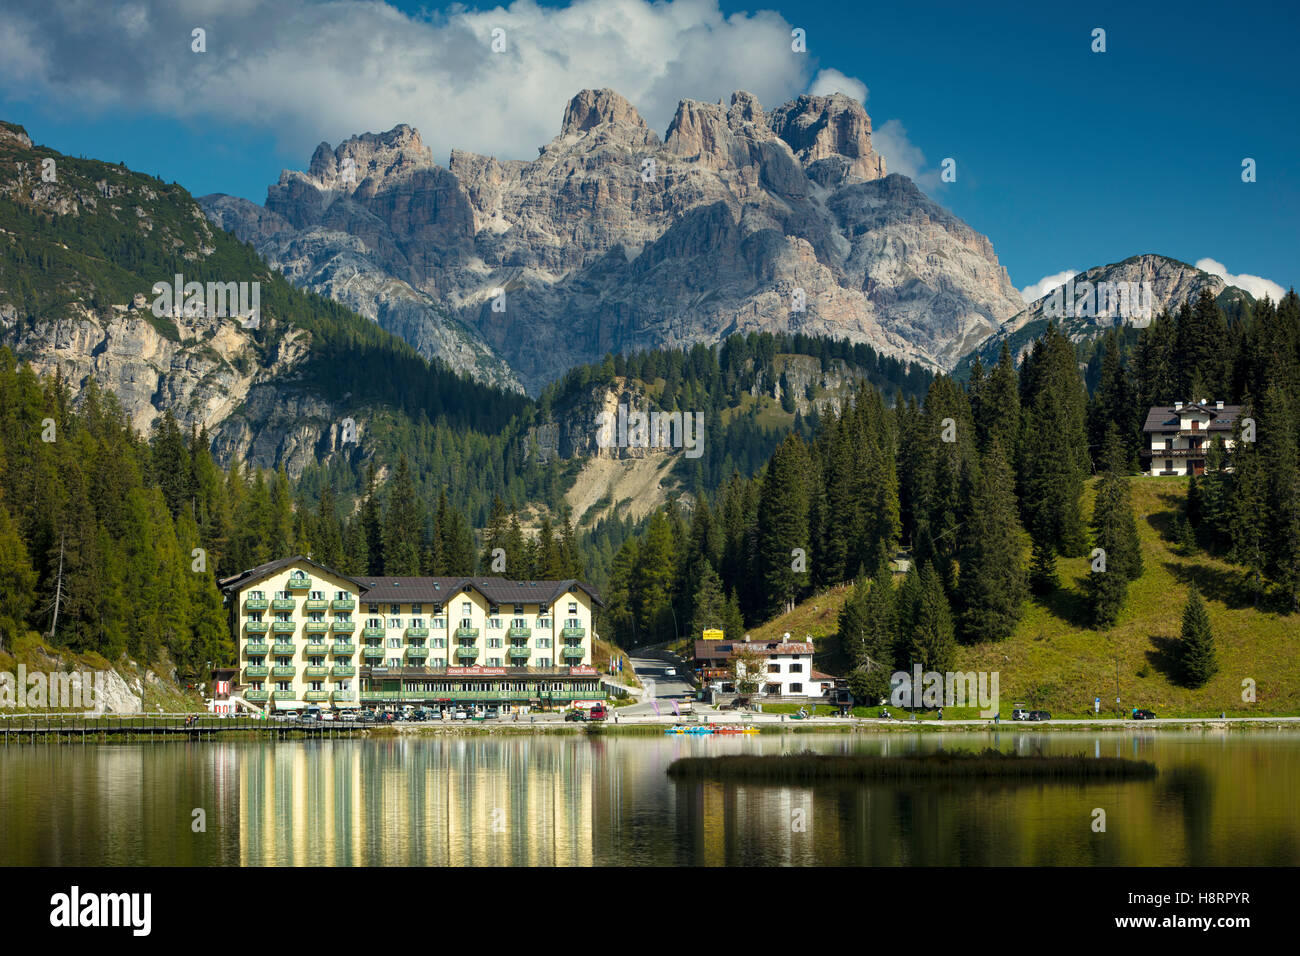 Reflections of the Grand Hotel Misurina in Lago Misurina with the Cristallo looming beyond, Dolomites, Belluno, - Stock Image